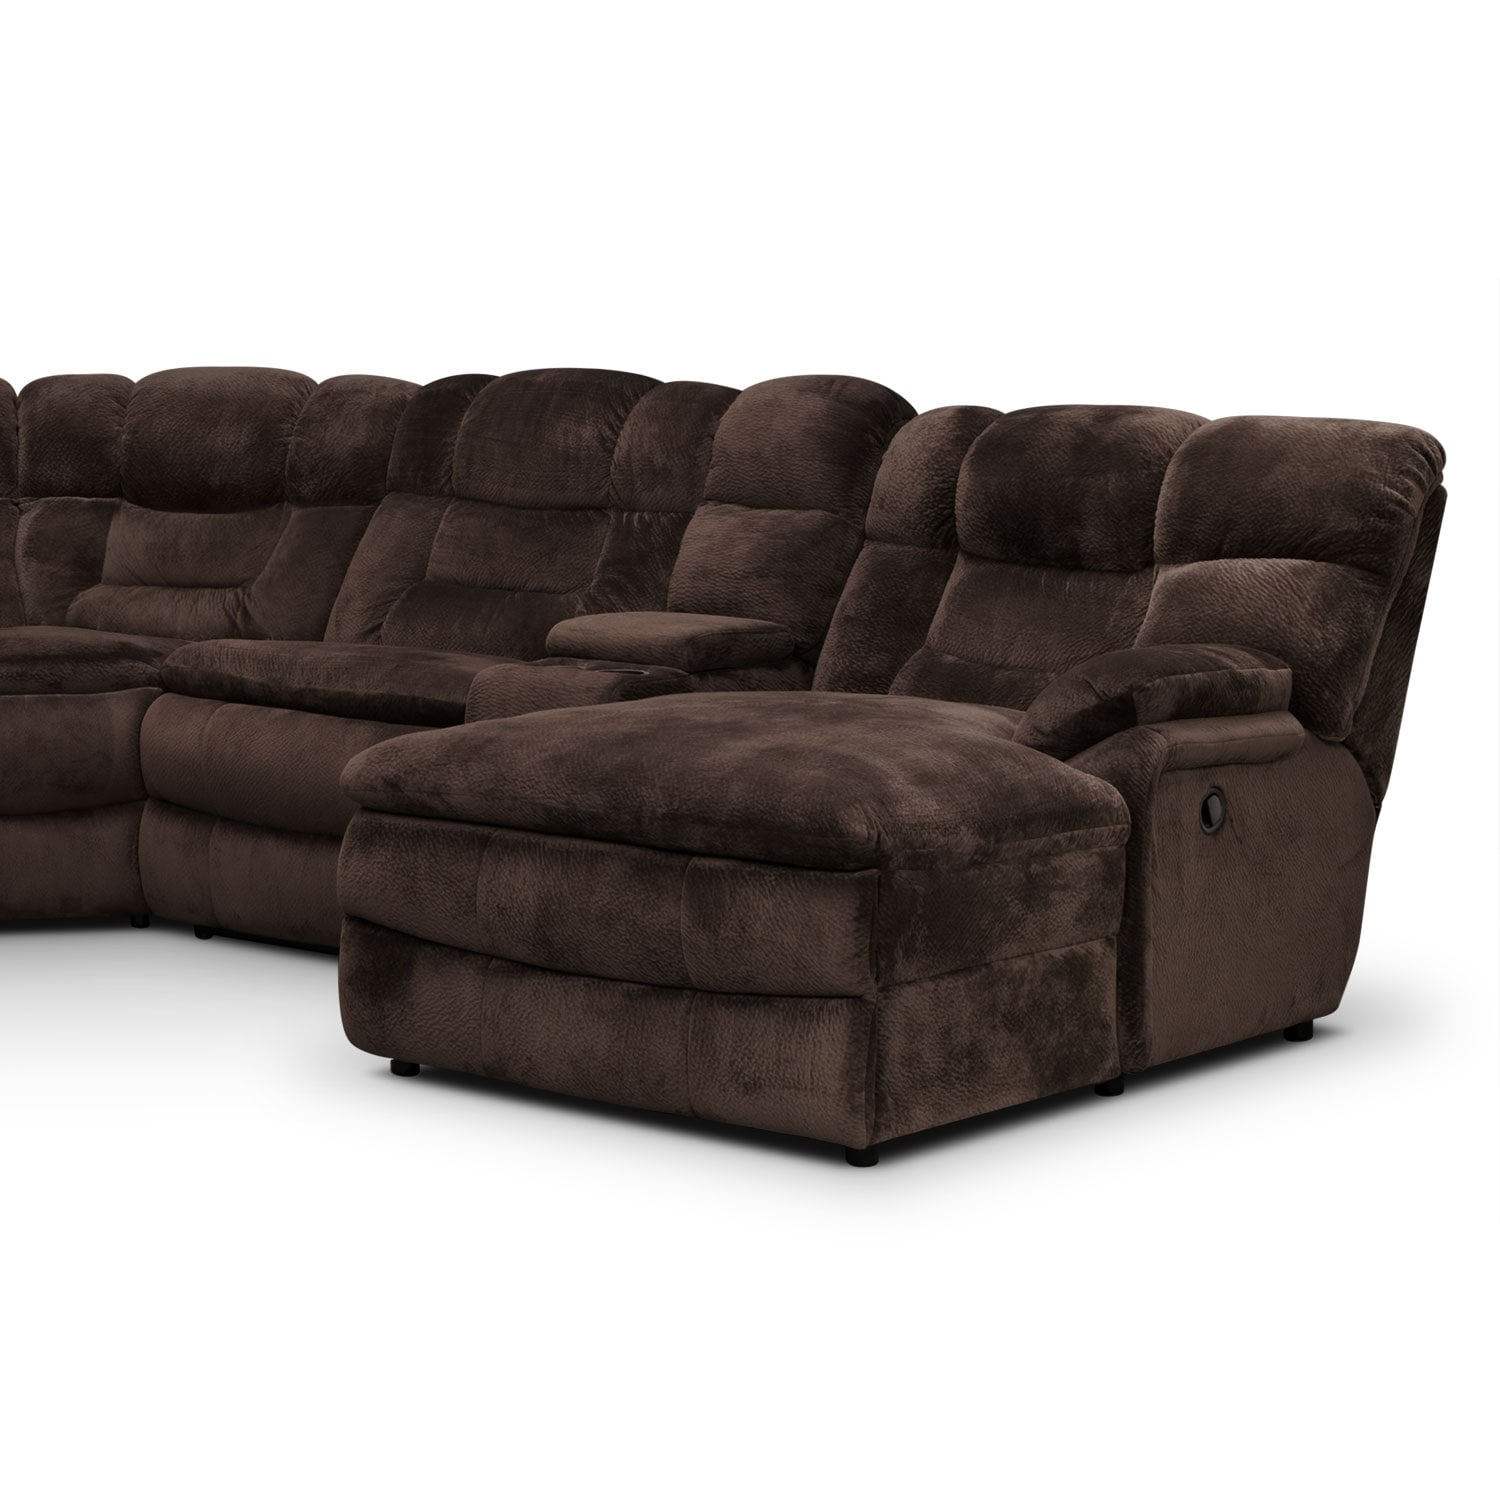 Reclining sofa sectional Loveseats that recline